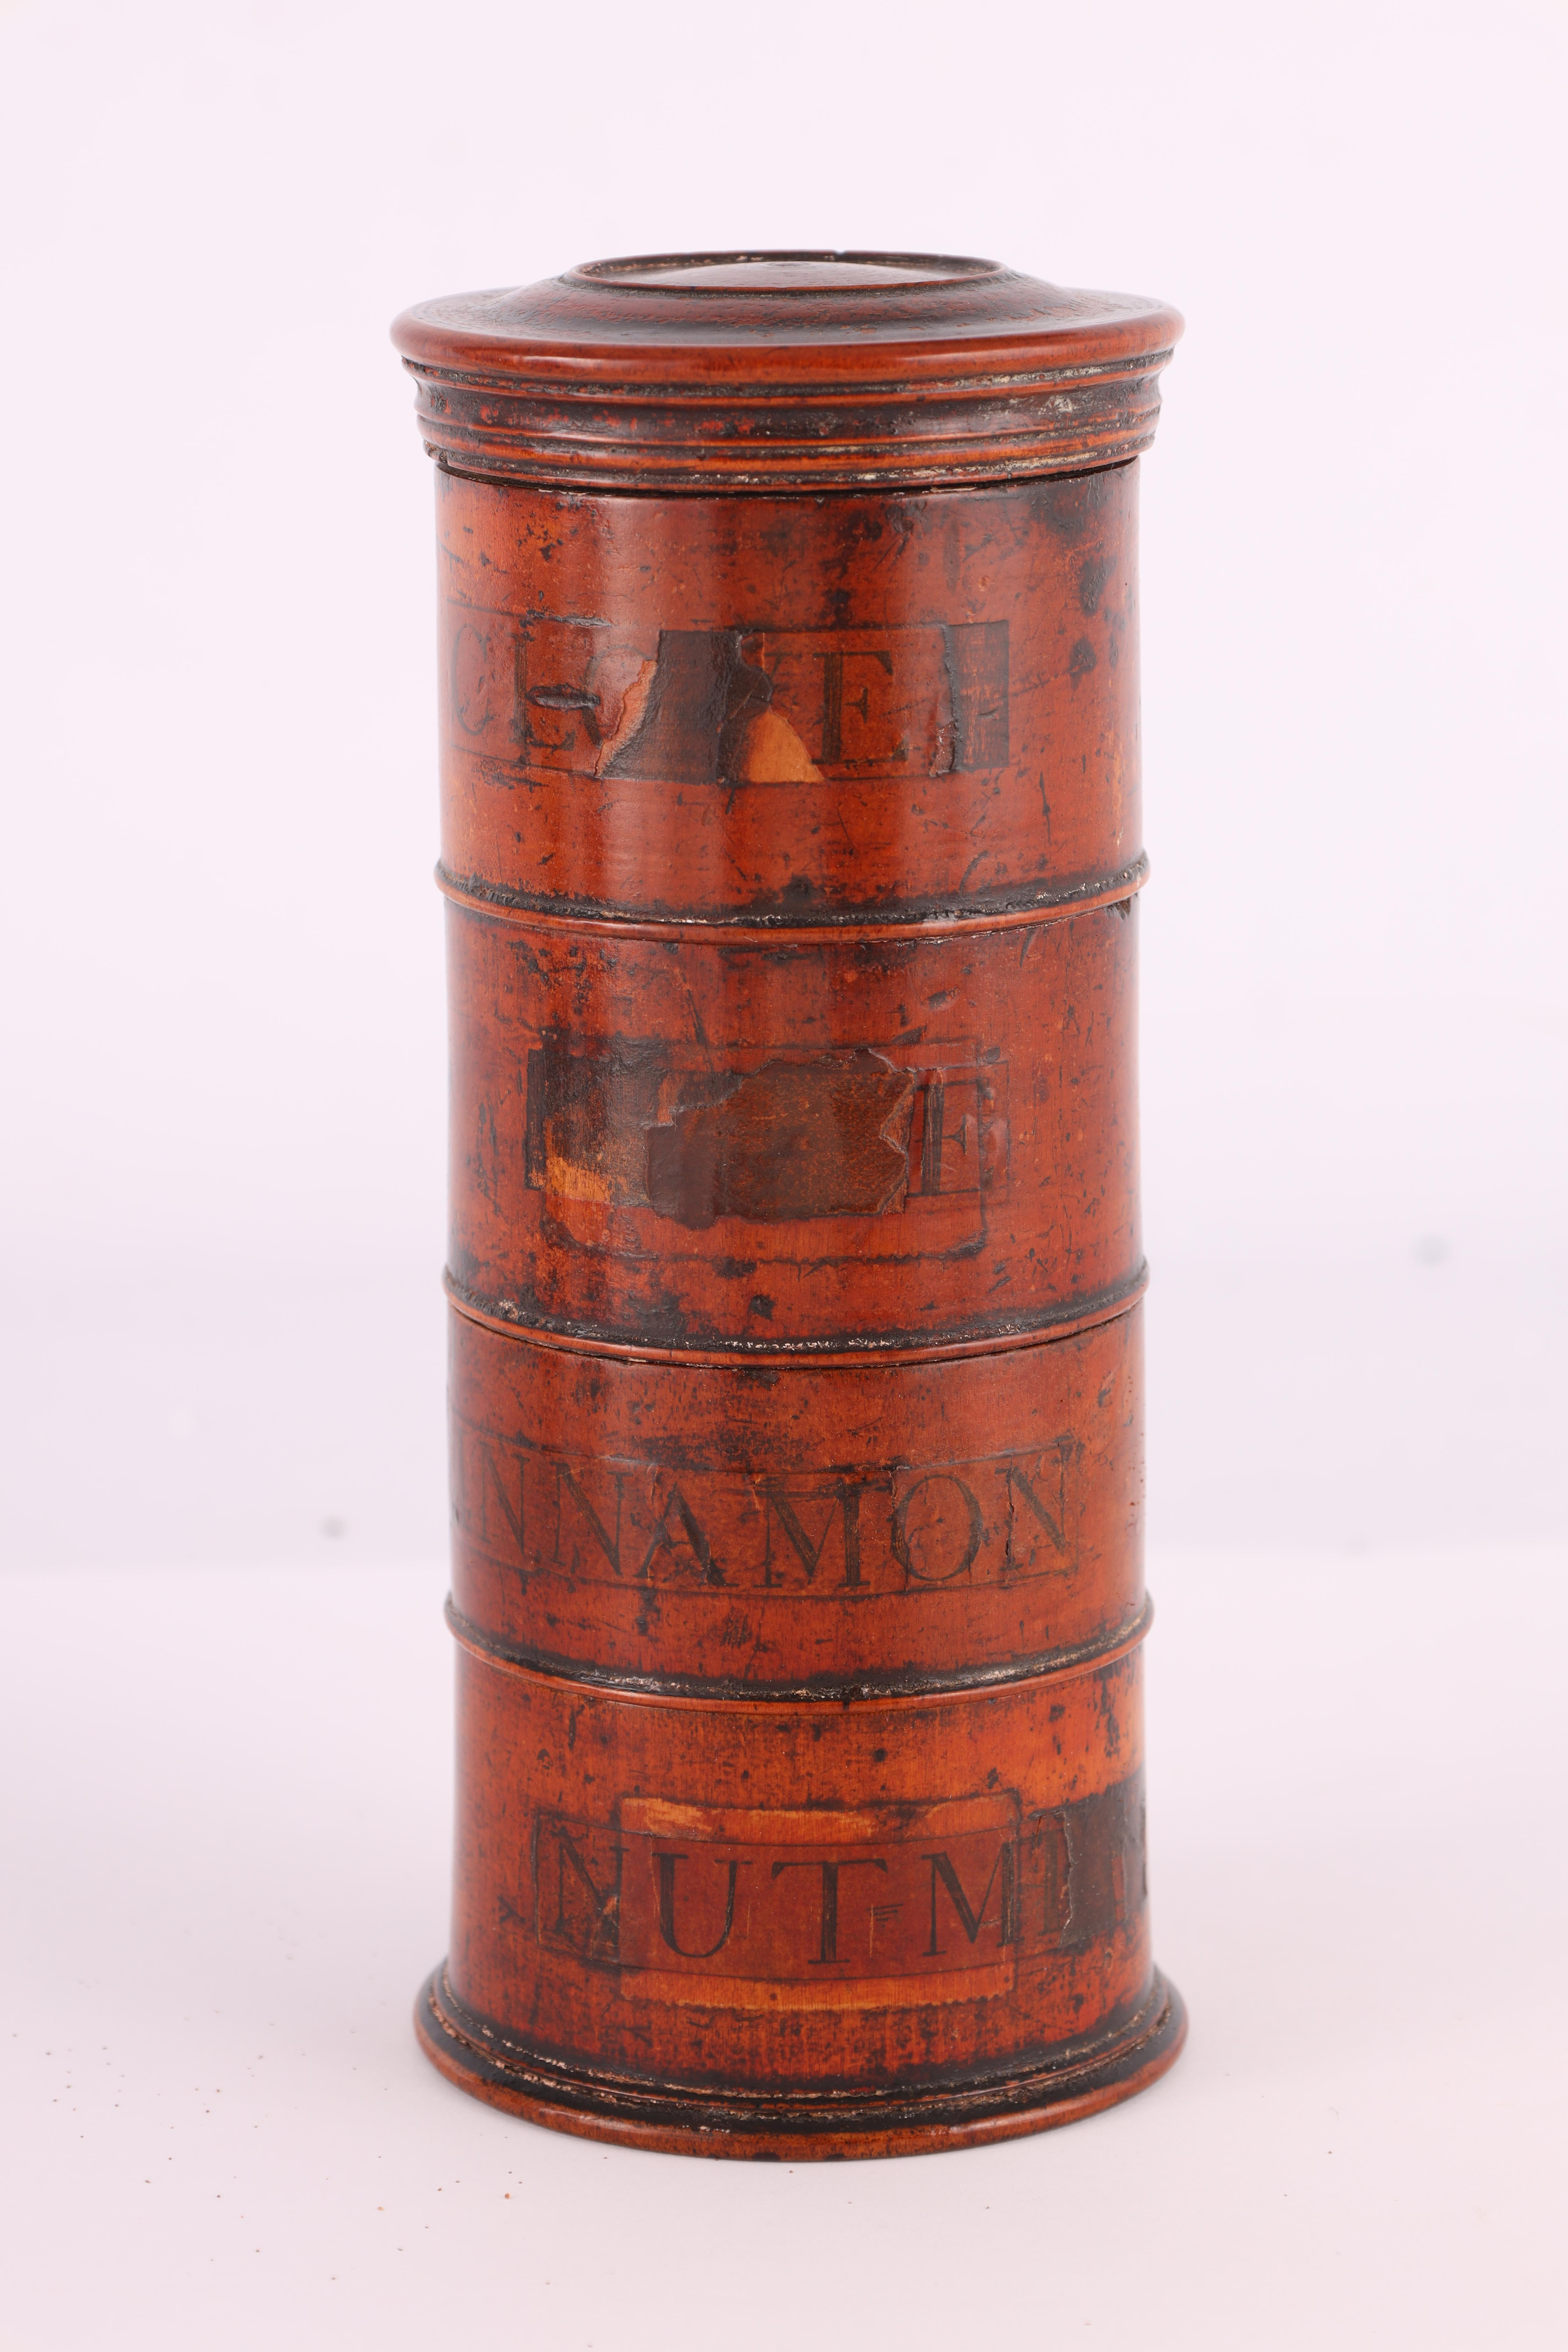 TWO EARLY 19TH CENTURY SYCAMORE TREEN SPICE TOWERS with original labels, the three stack 15cm - Image 2 of 13